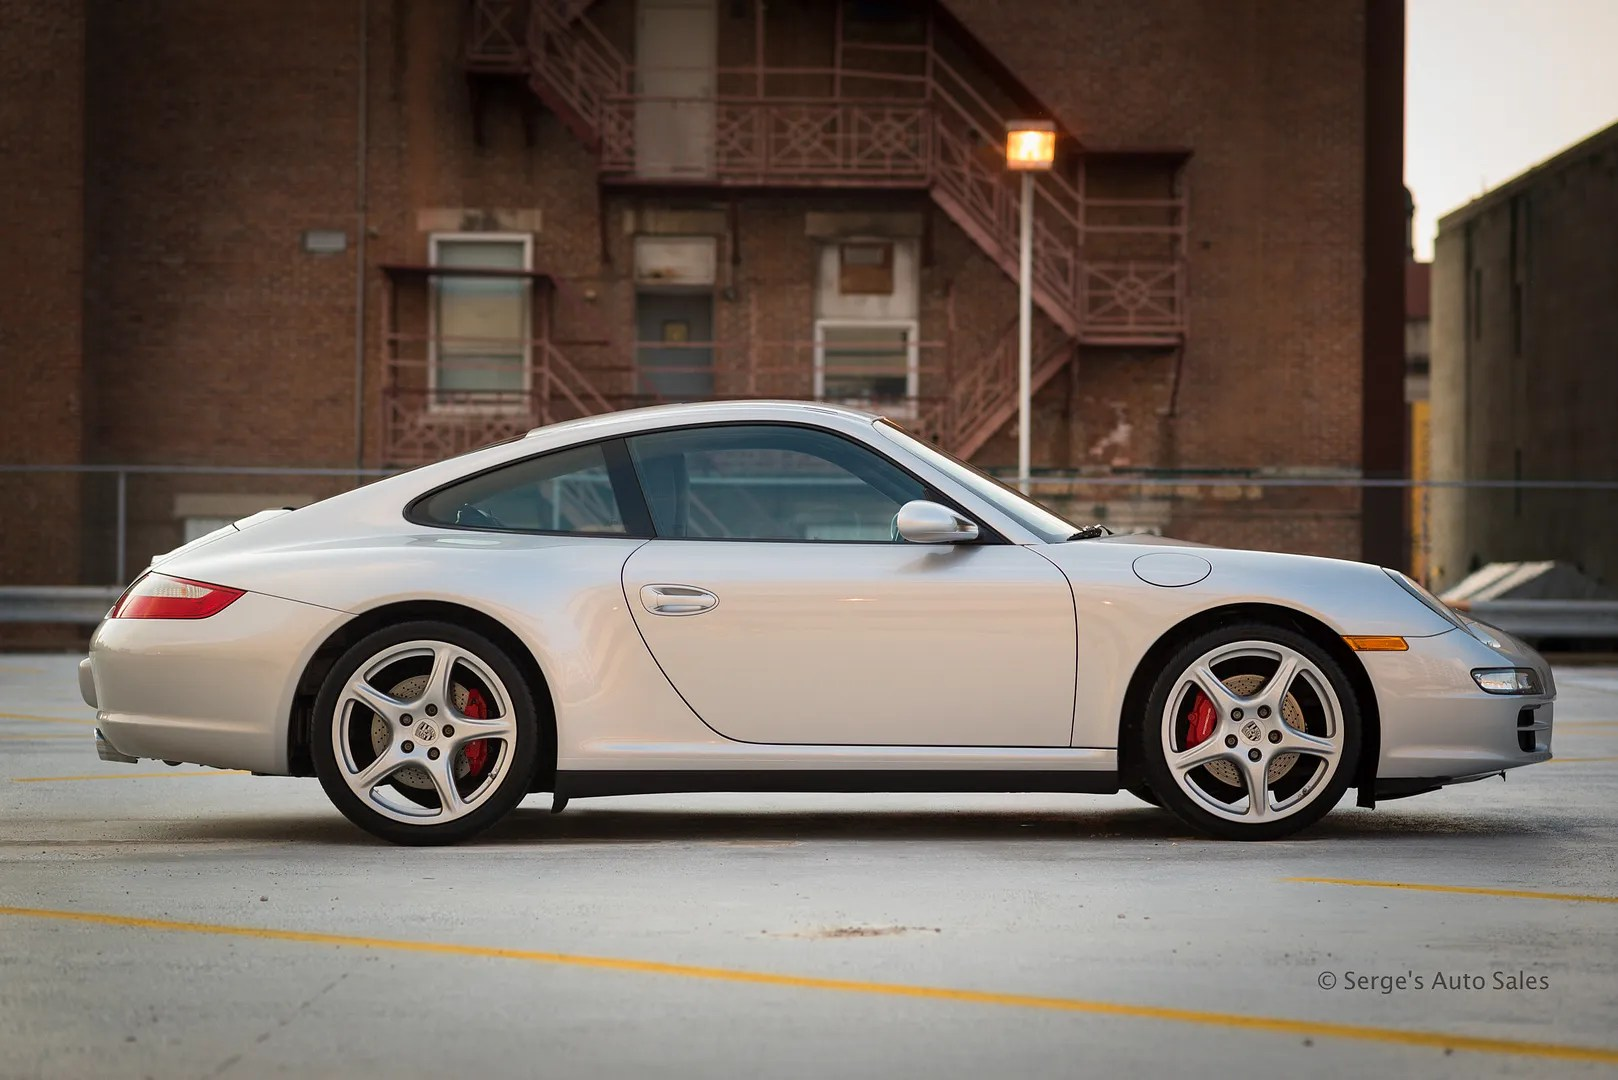 photo Serges-auto-sales-porsche-911-for-sale-scranton-pennsylvania-10_zps9s0nyubx.jpg